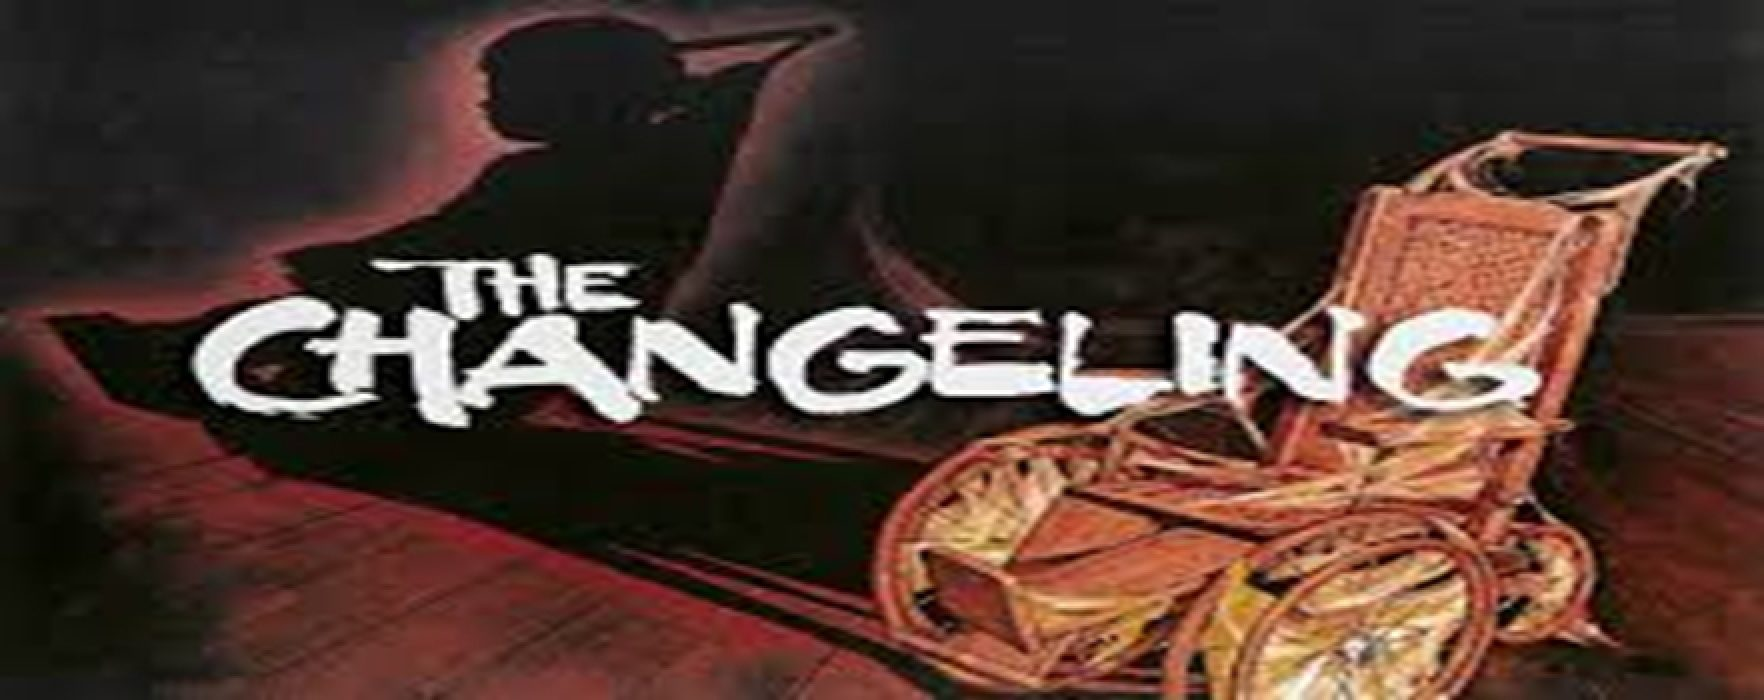 The Changeling: A Haunting Tale